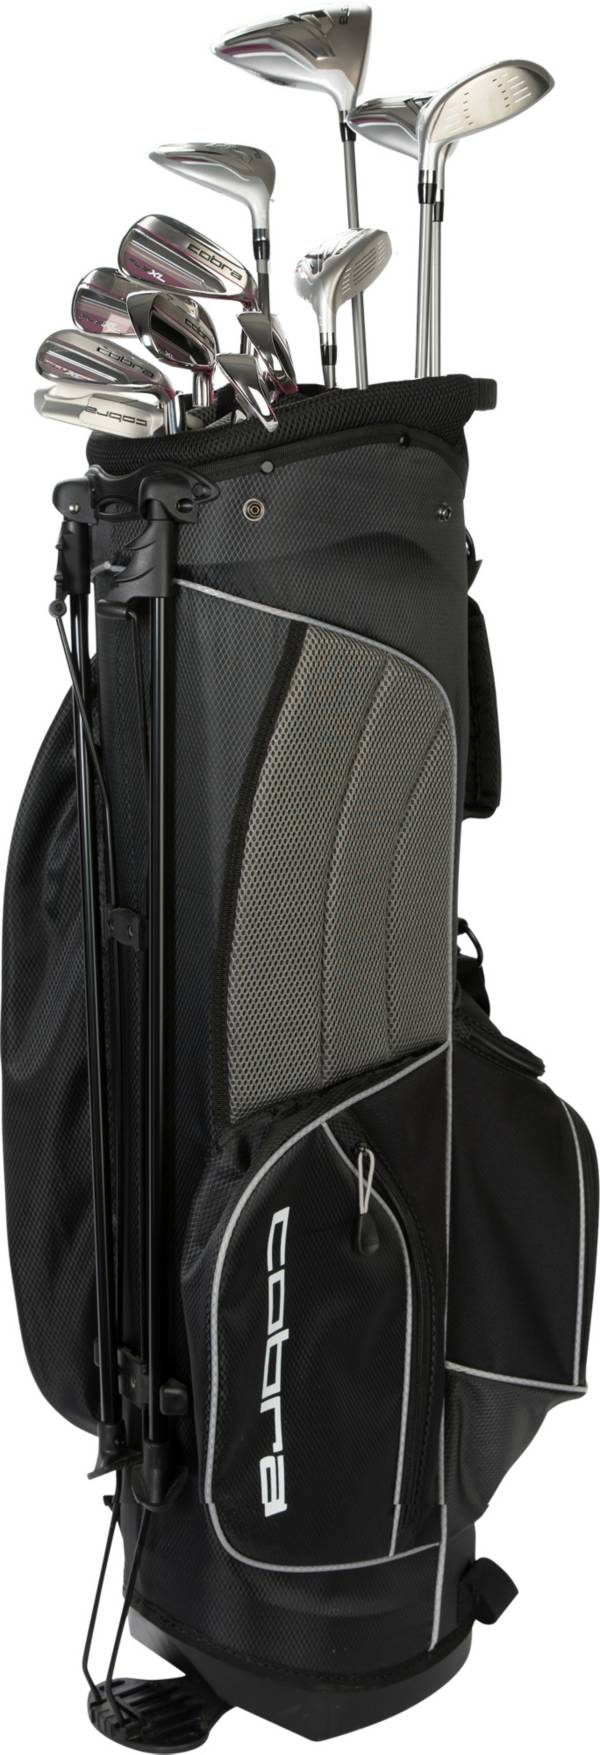 Cobra Women's FLY-XL 13-Piece Complete Set with Stand Bag – (Graphite) product image